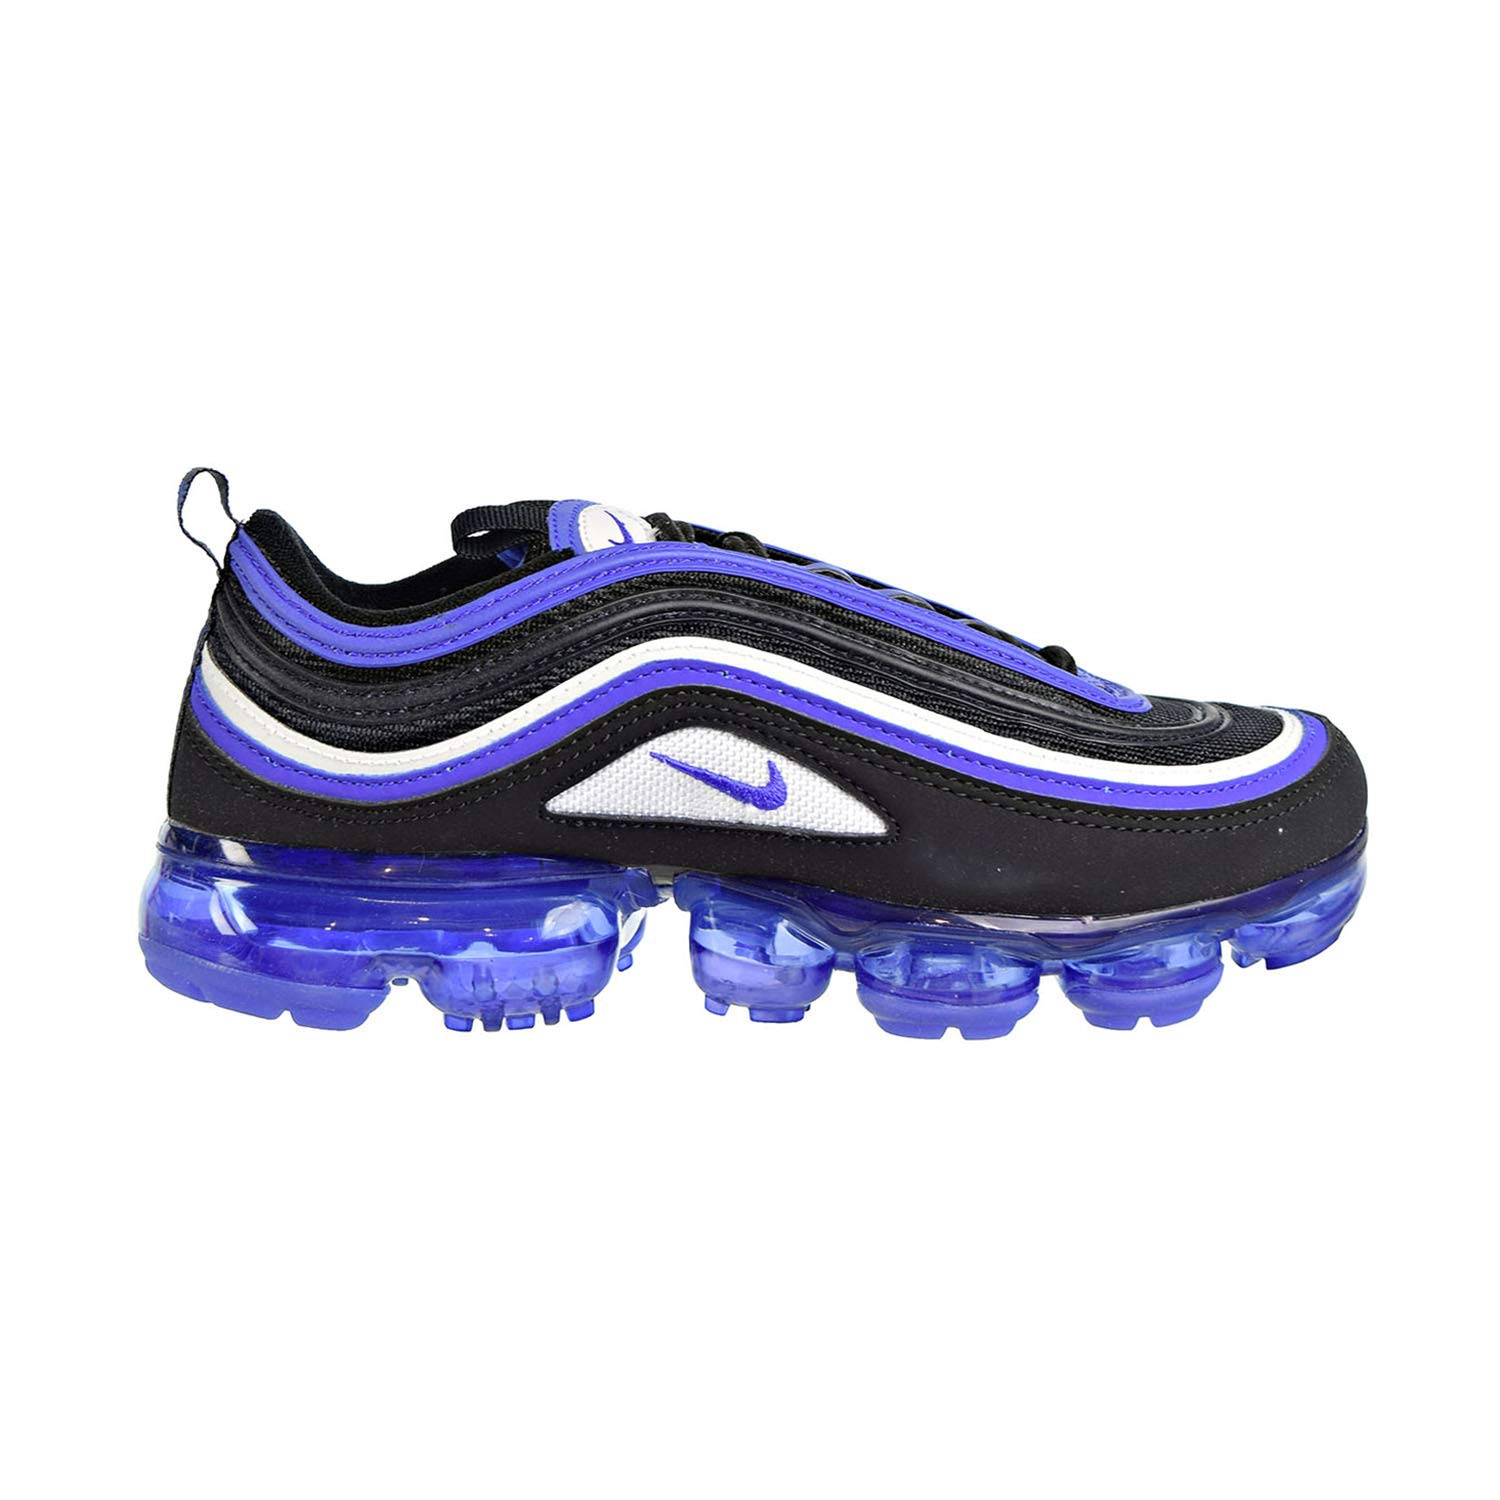 timeless design 9f81d 80d55 Amazon.com | Nike Air Vapormax '97 (GS) Big Kids' Shoes ...